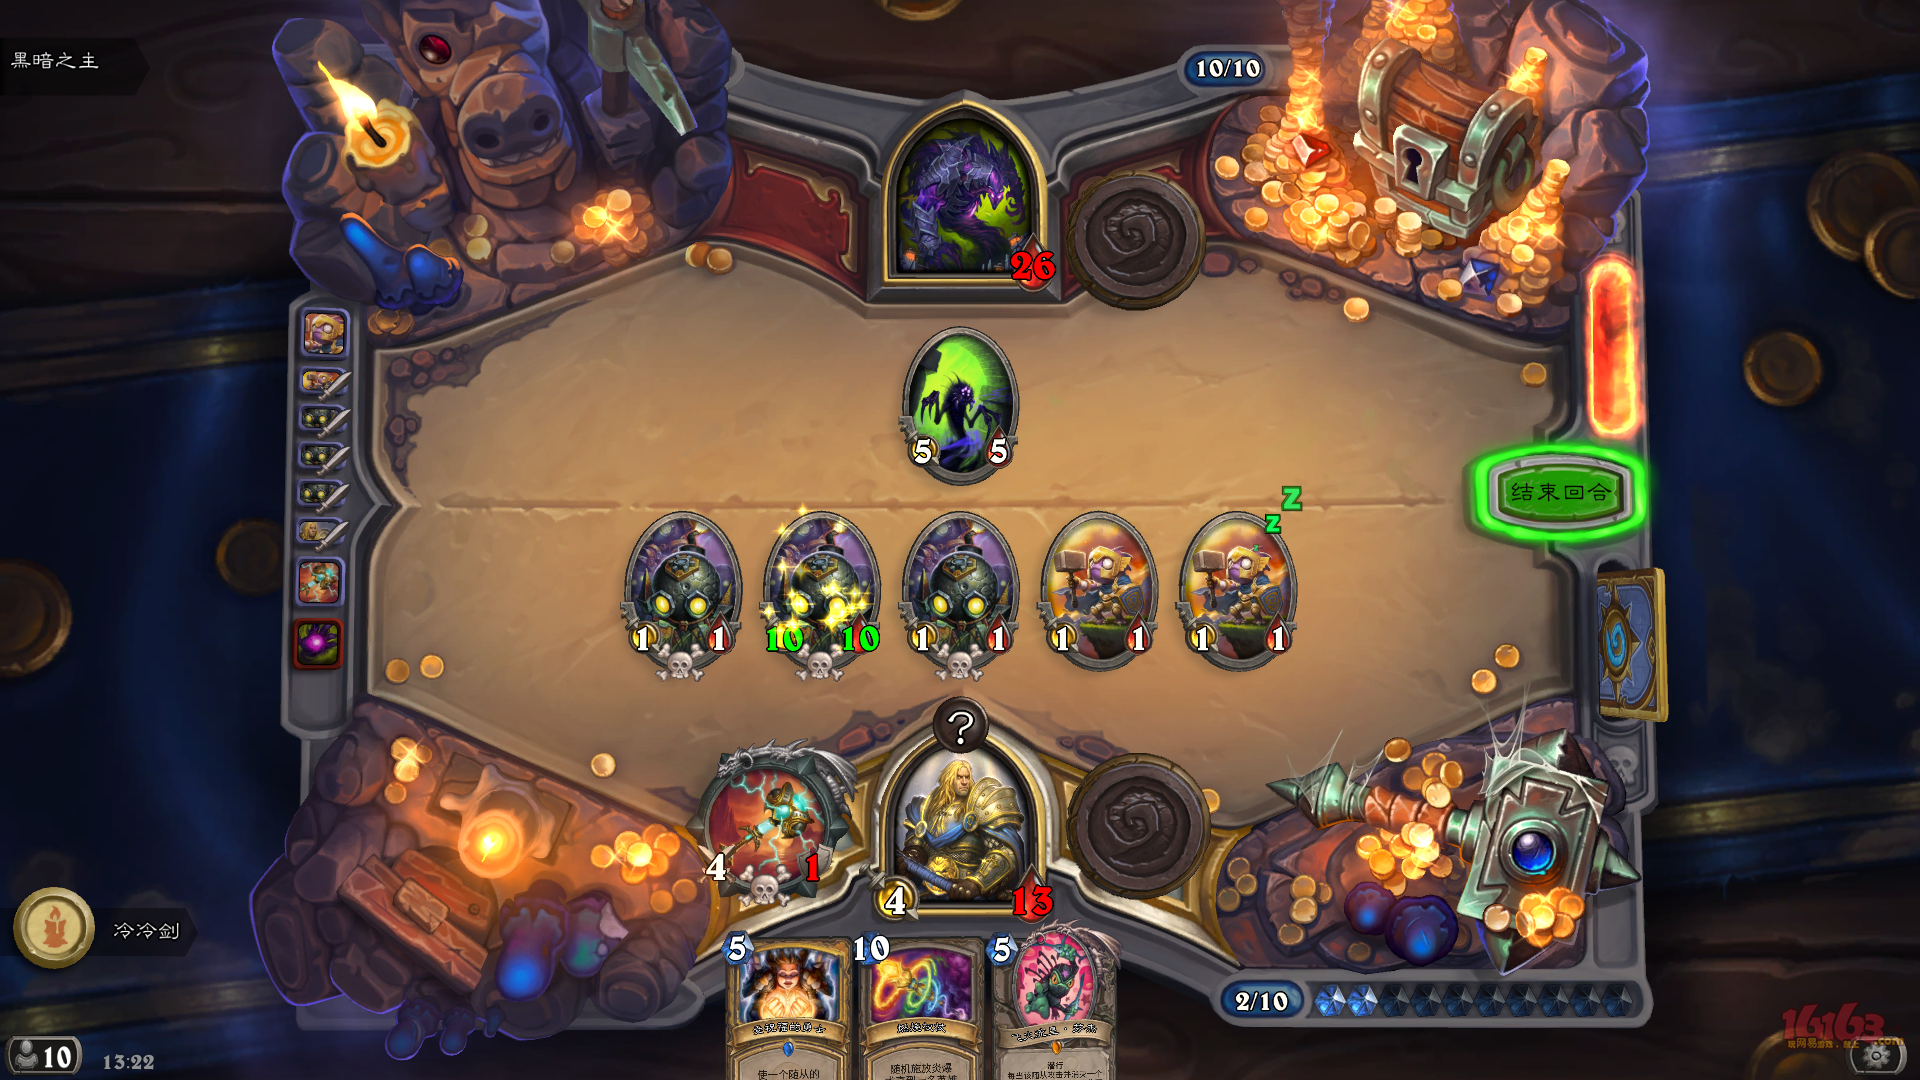 Hearthstone Screenshot 12-10-17 13.22.39.png